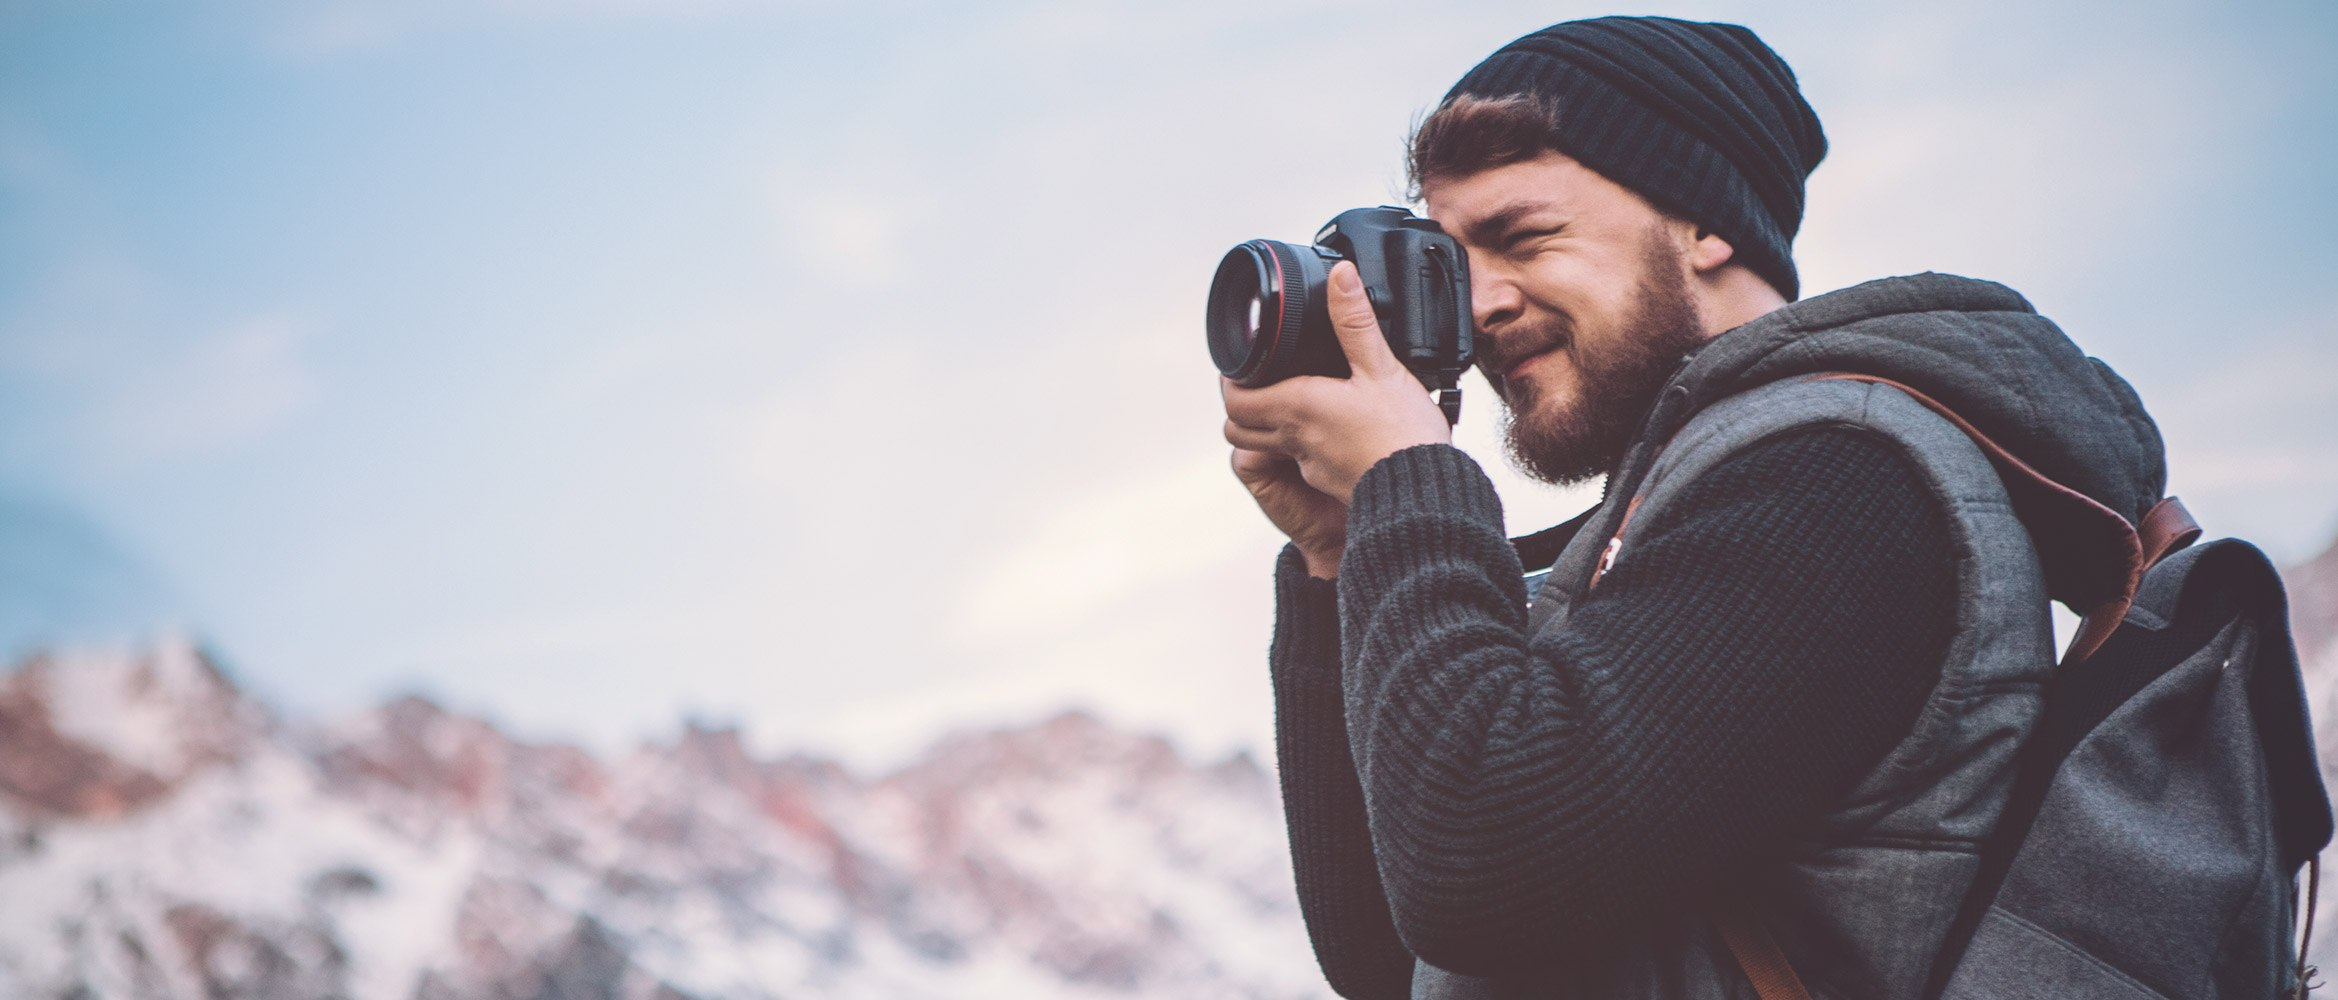 Must-have camera equipment every photographer needs ...